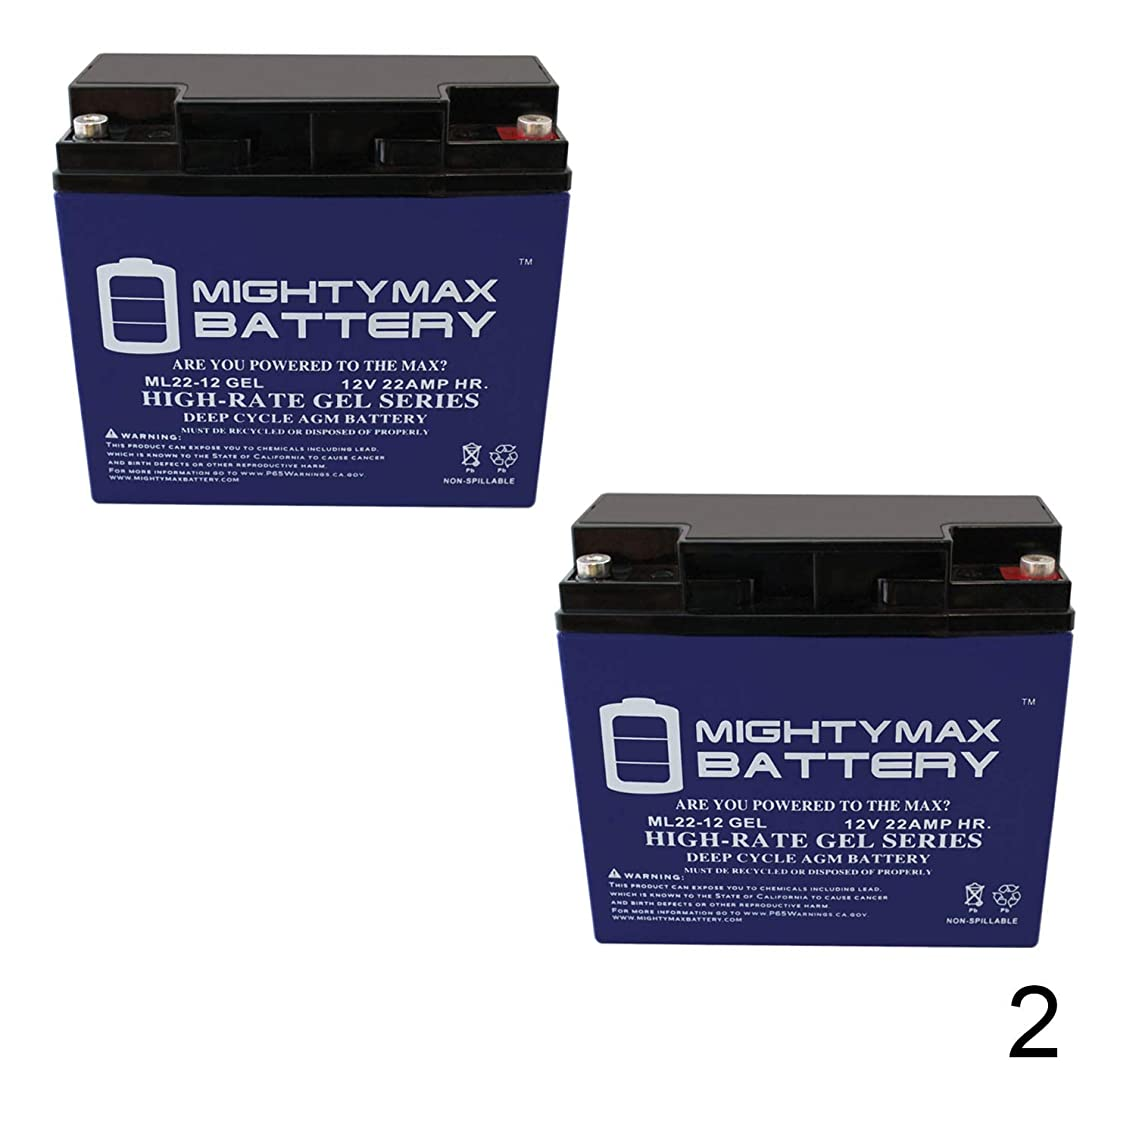 Mighty Max Battery 12V 22AH Gel Battery for Golden Technologies LiteRider GL110-2 Pack Brand Product